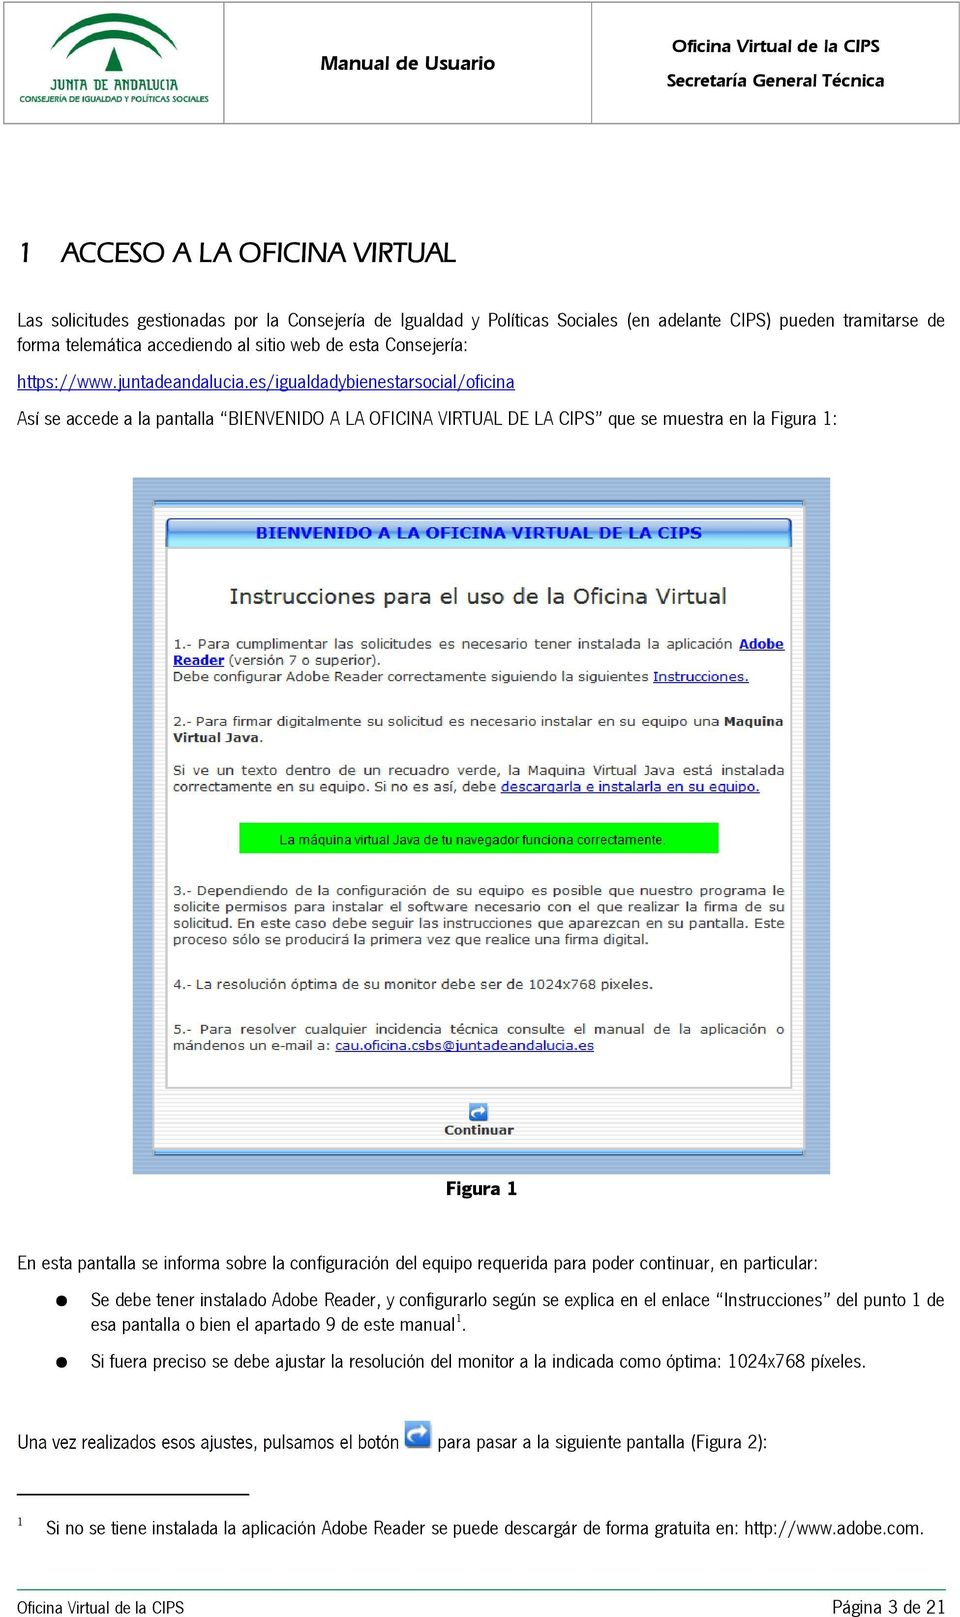 Oficina virtual de la cips pdf for Oficina virtual de fpe